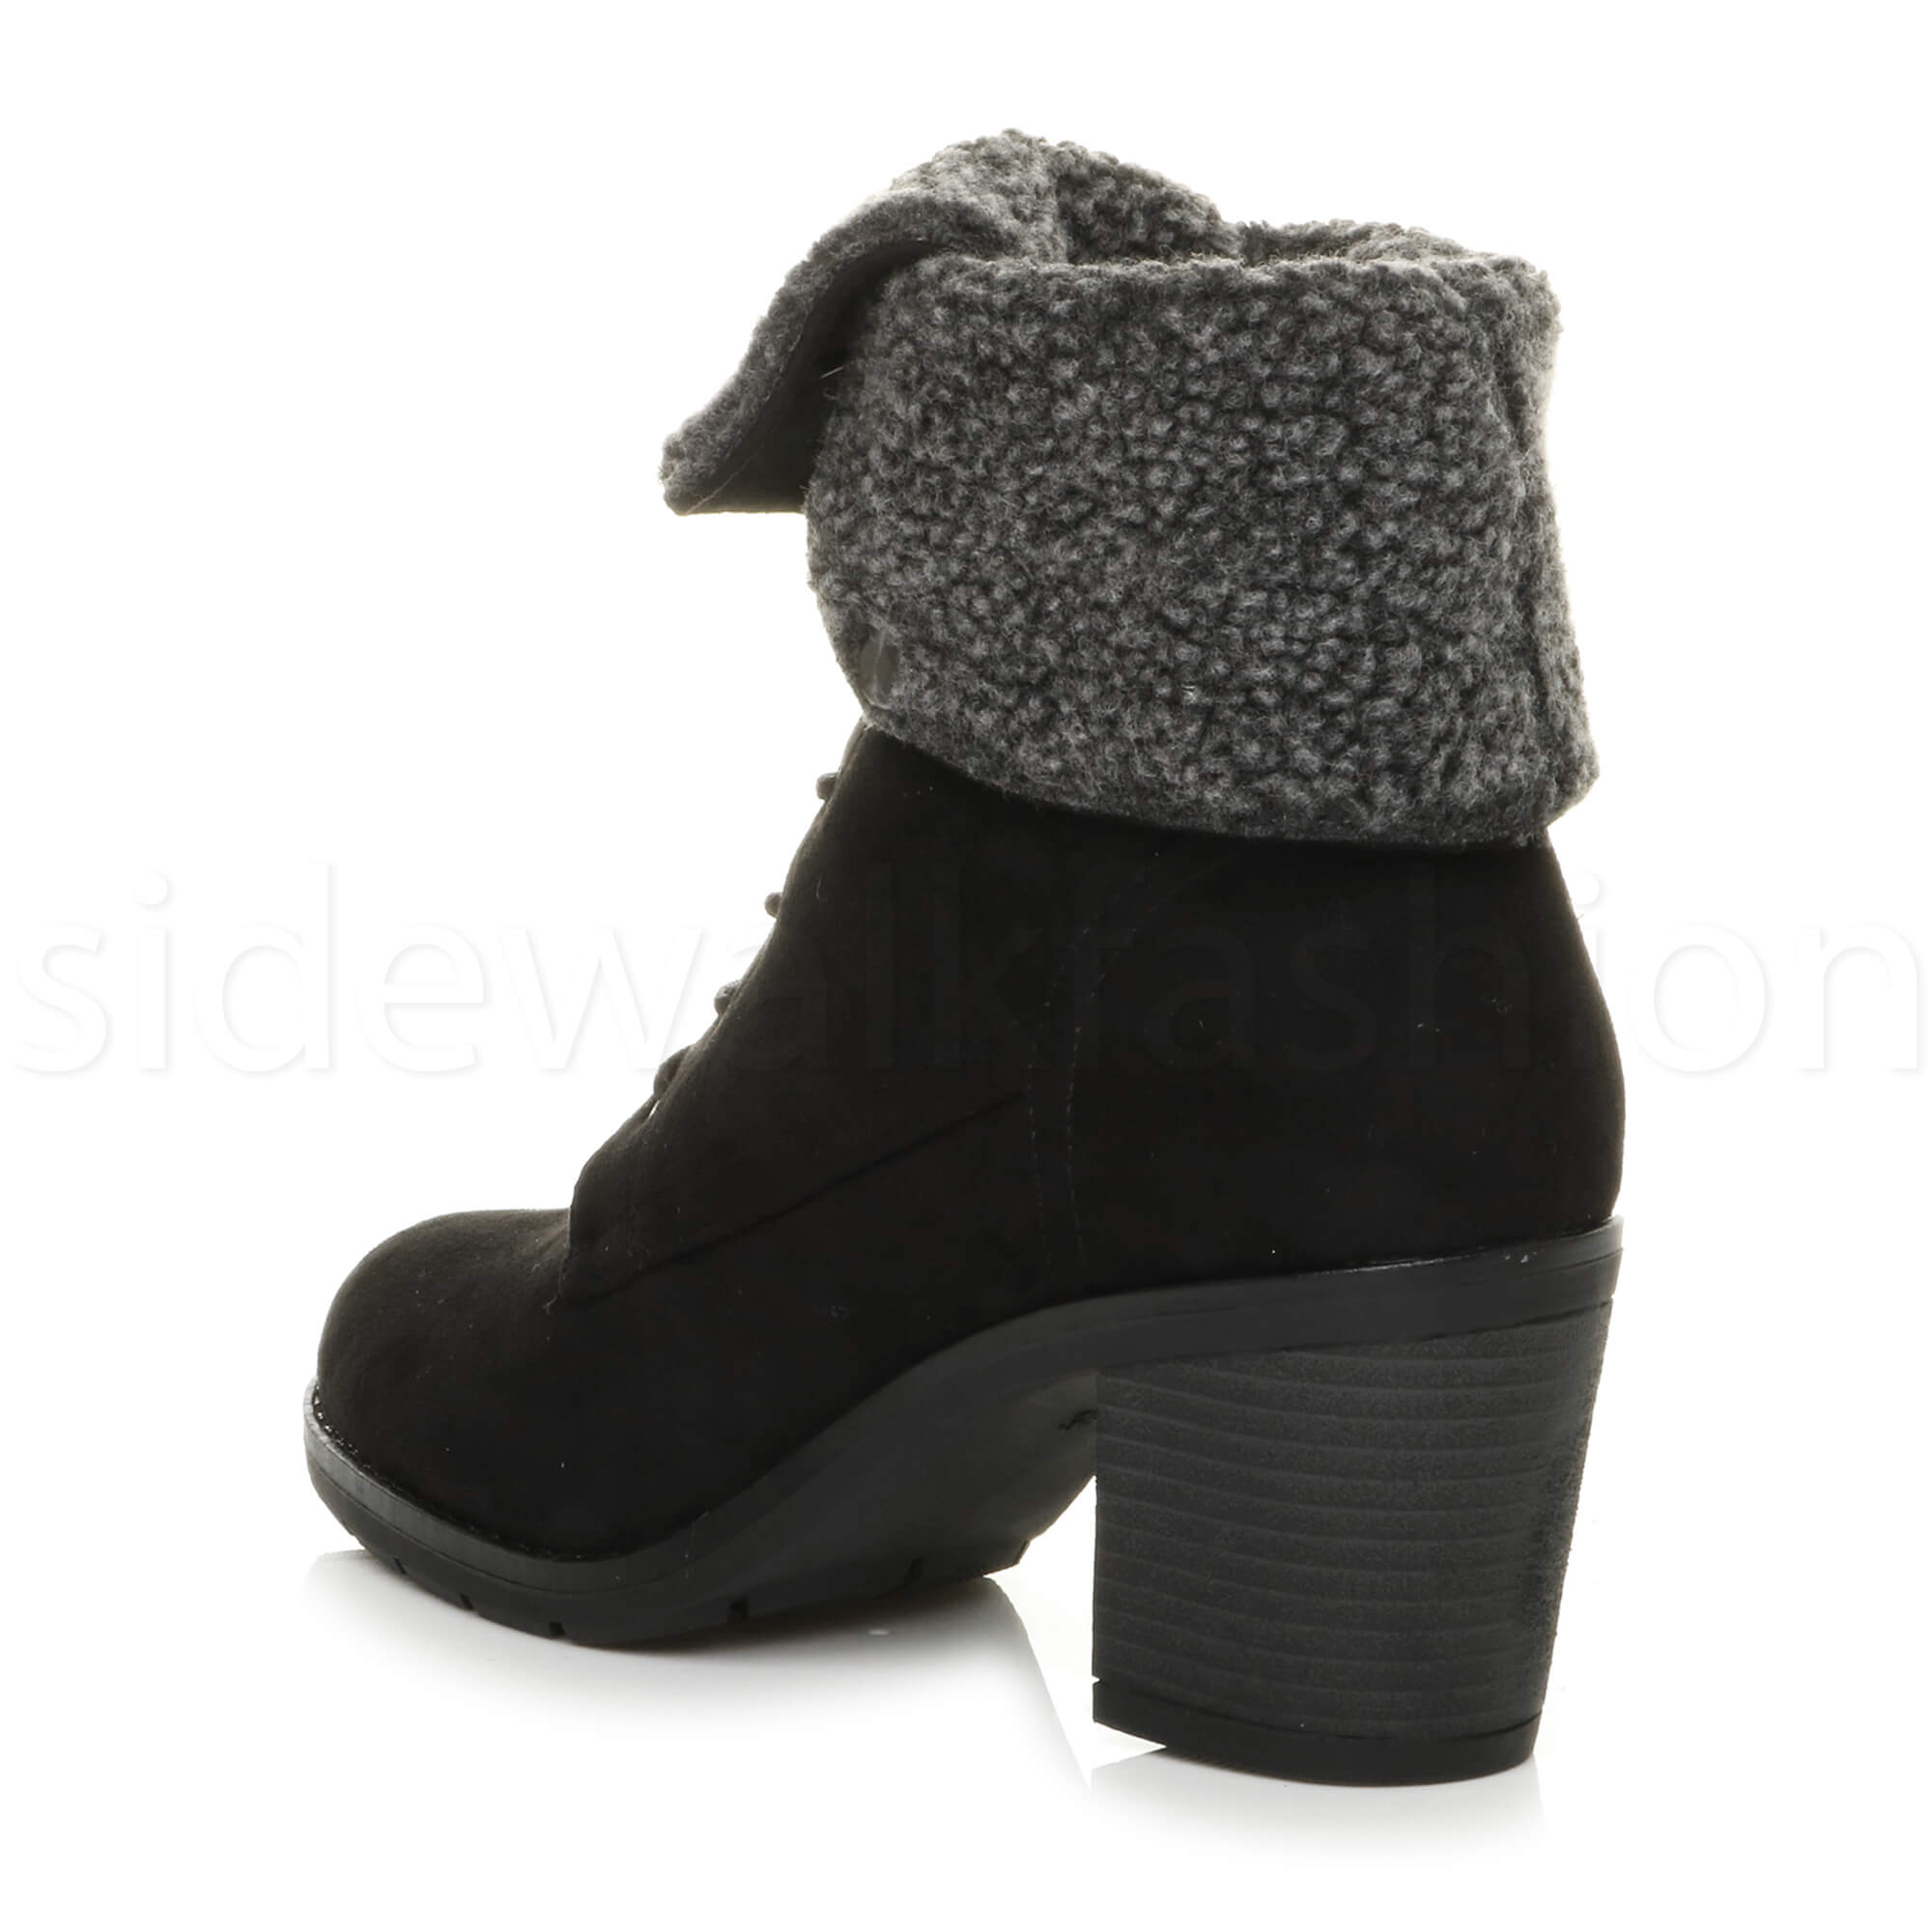 5c89be40452d Womens ladies chunky mid heel fur cuff lined winter lace up ankle ...